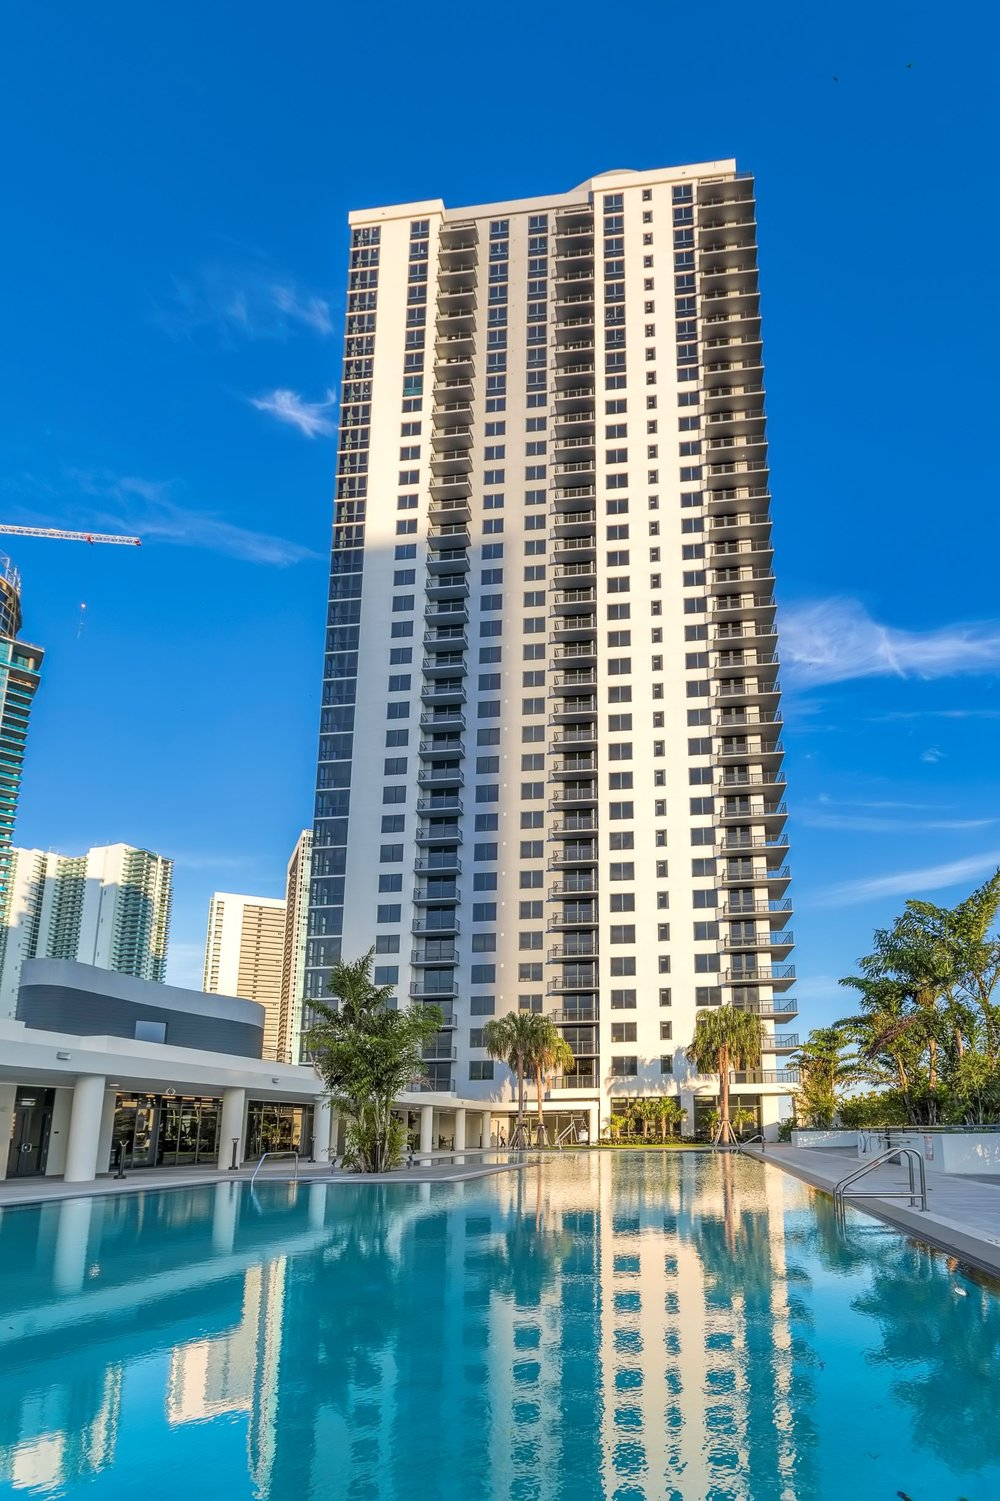 Miami Worldcenter Delivers Its First Tower As CAOBA Apartment Tower Launches Leasing In Downtown Miami